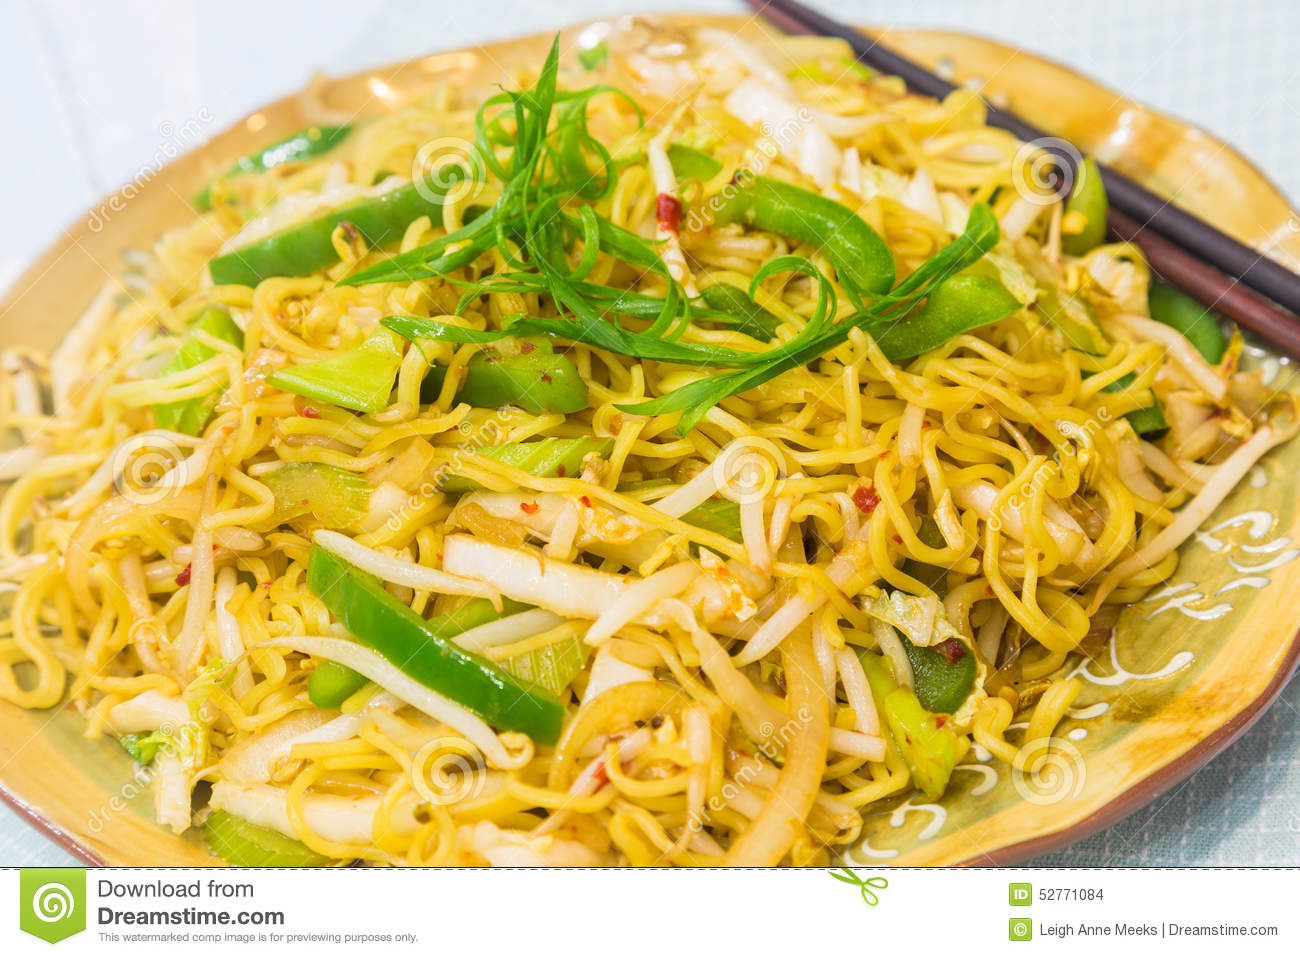 how to cook vegetable noodles